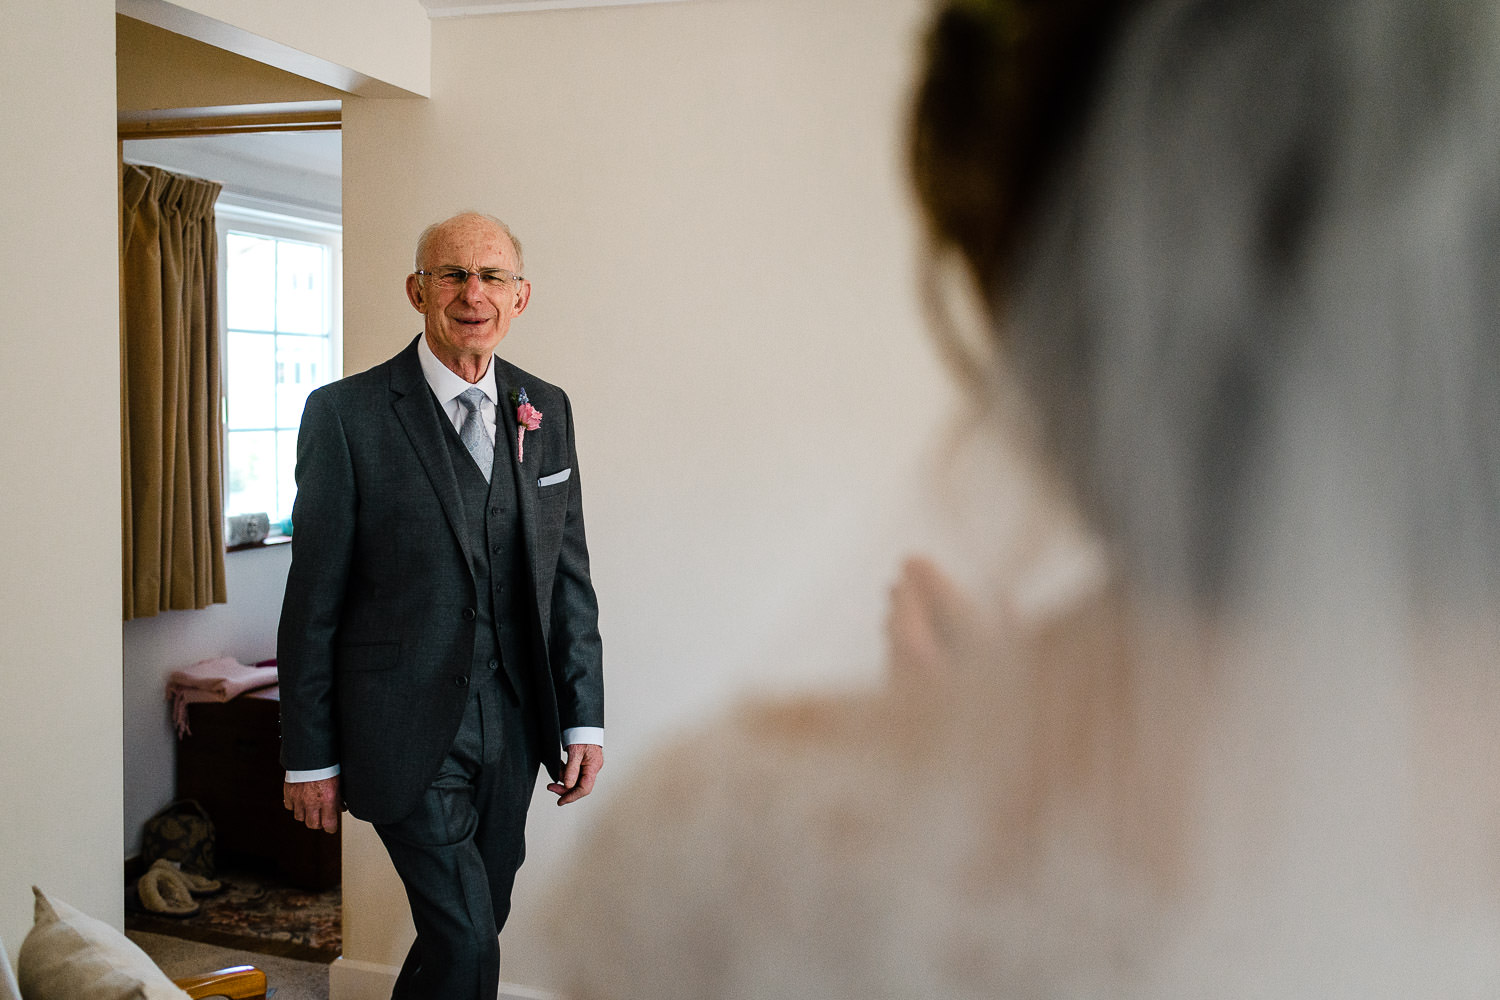 father of the bride's first look at daughters wedding dress